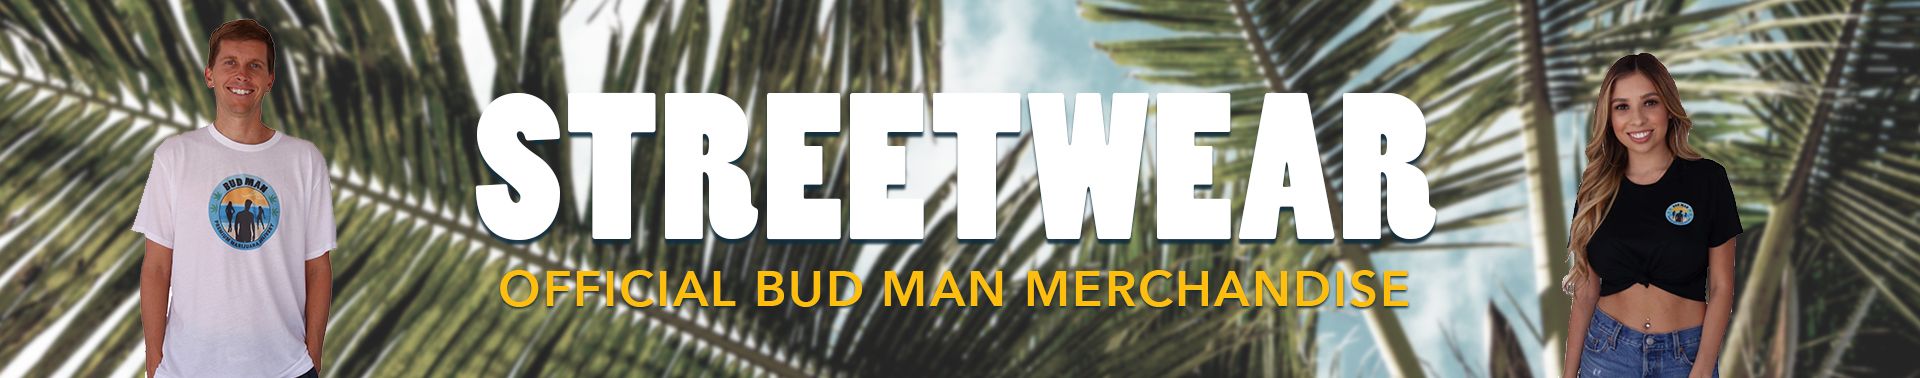 Bud Man merch